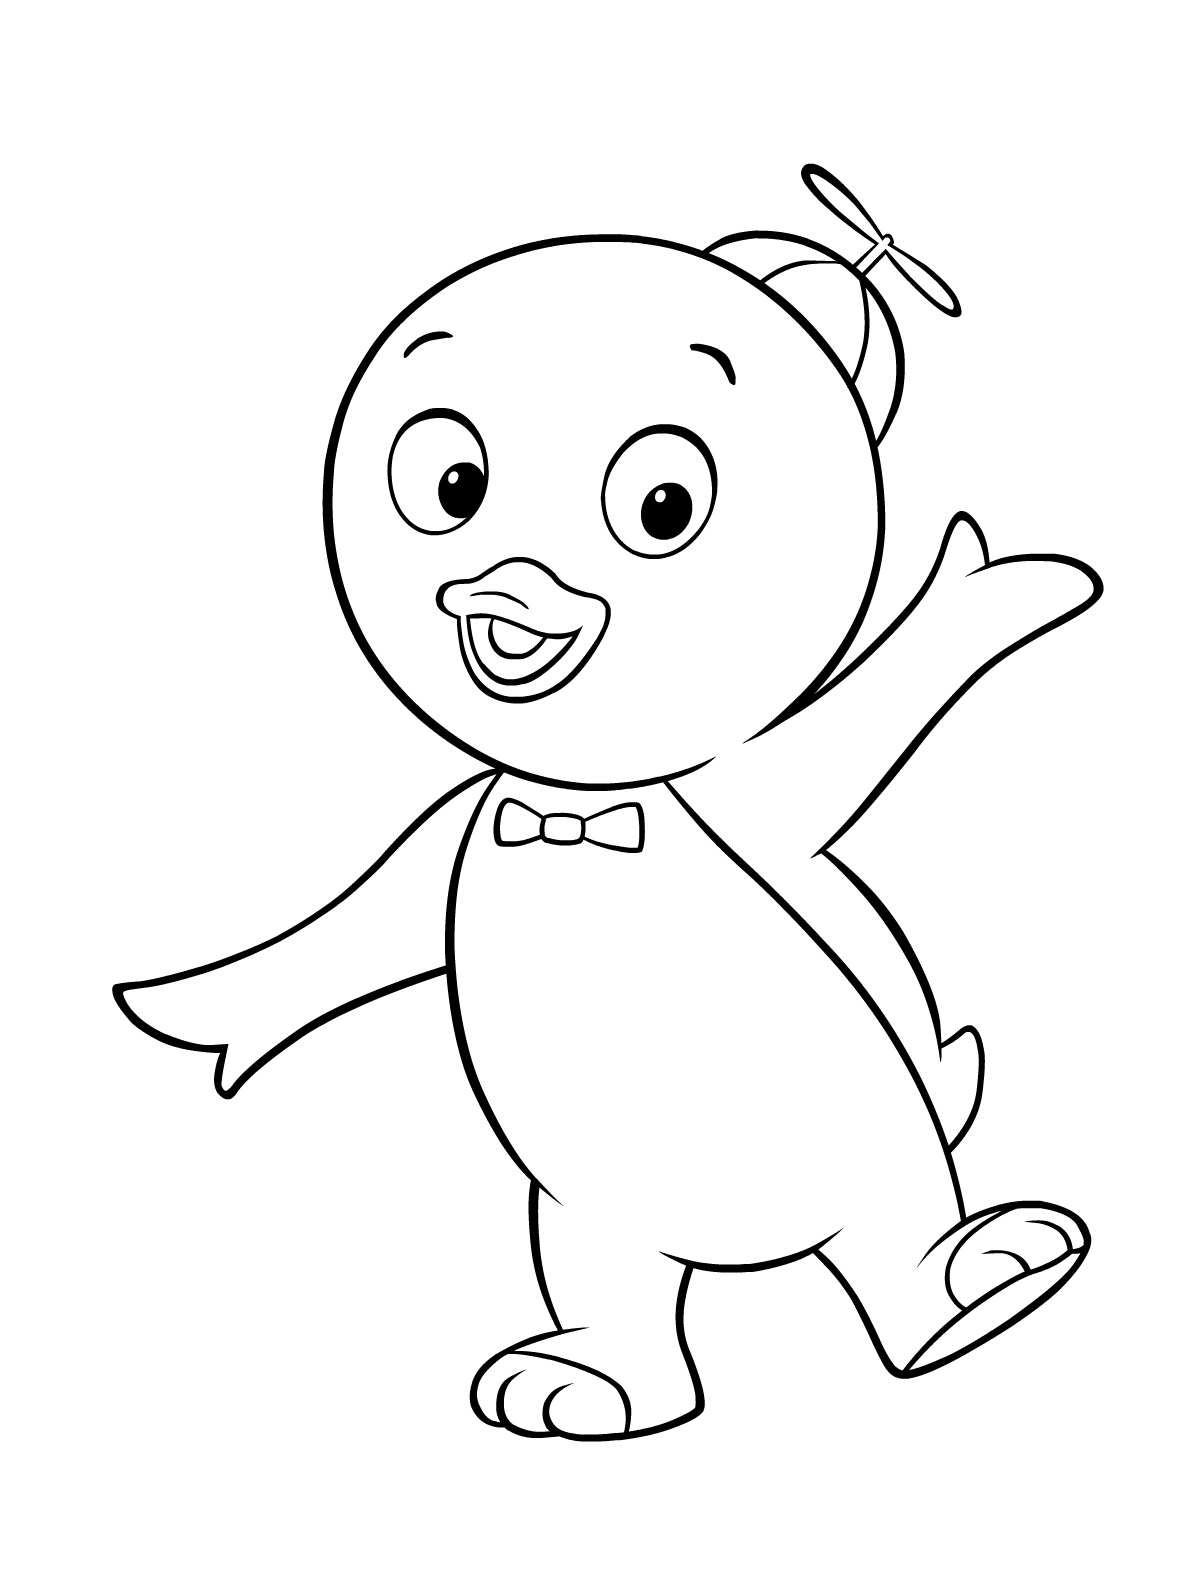 Free Printable Backyardigans Coloring Pages For Kids Printable Color Pages